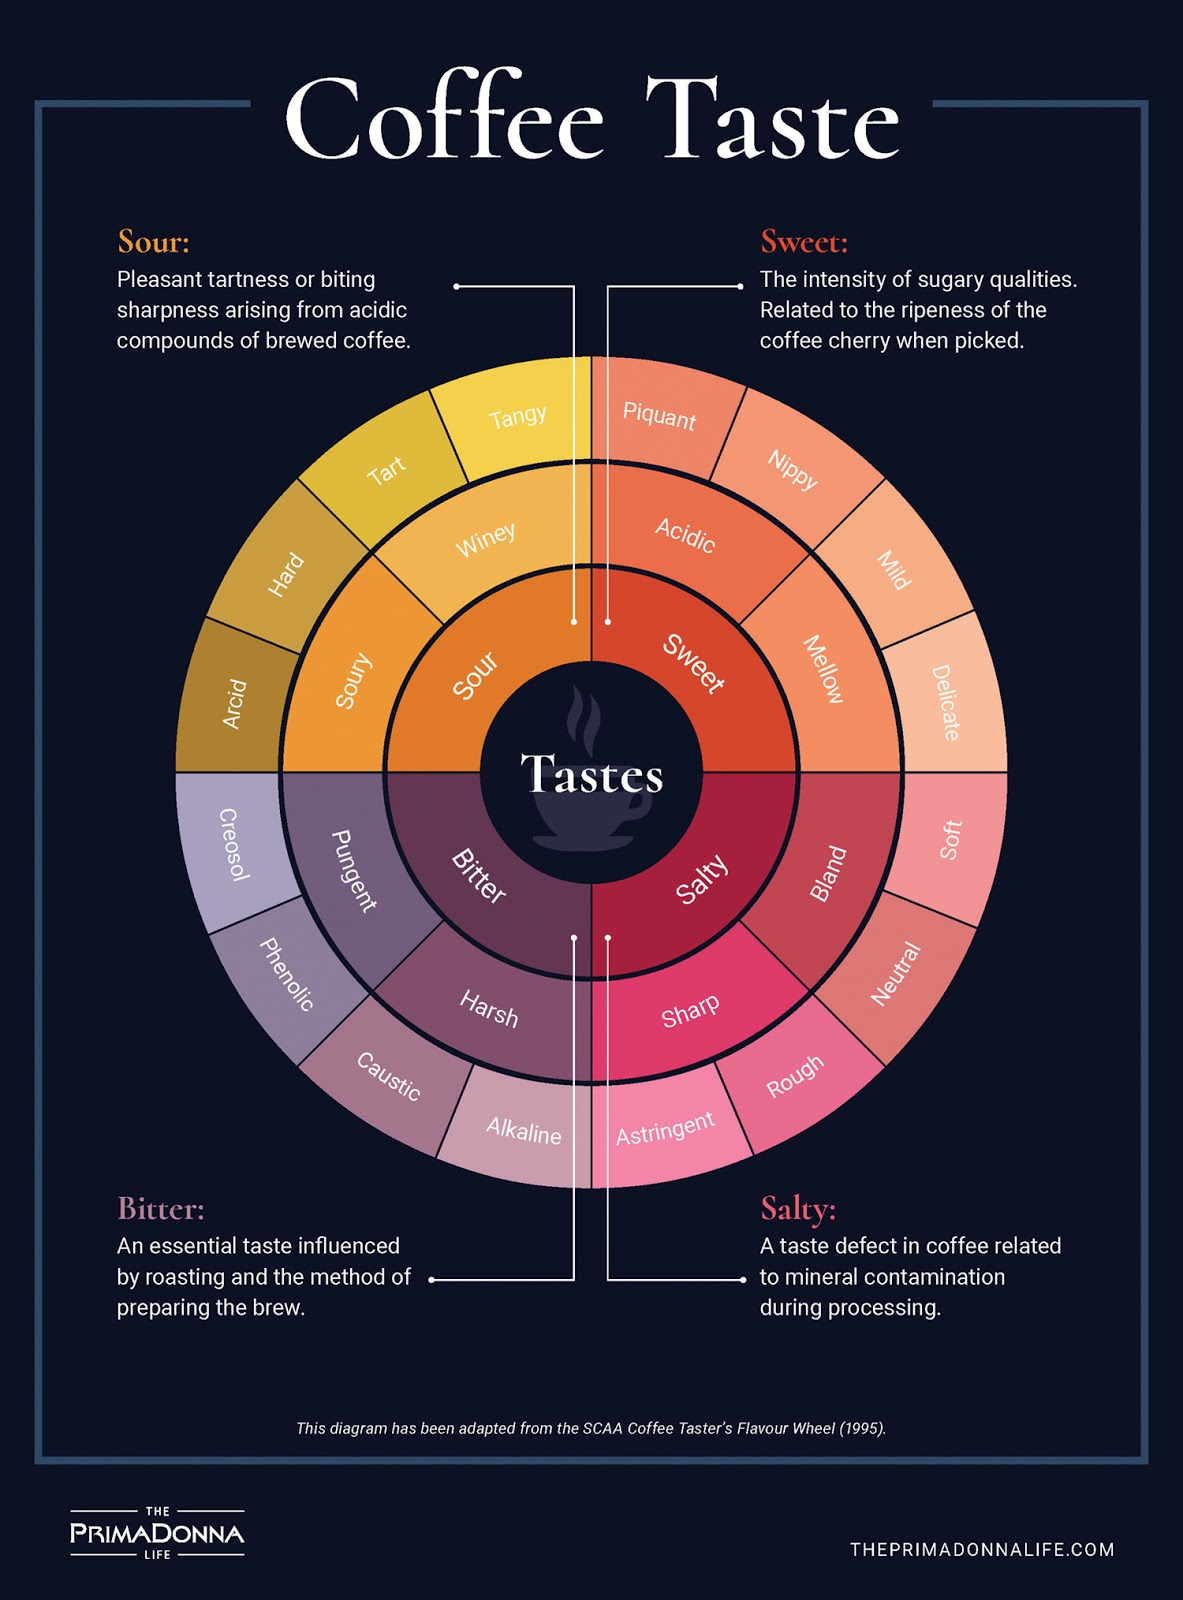 An abridged version of the Coffee Tasting Wheel, where we break down the notes and nuances a coffee can have